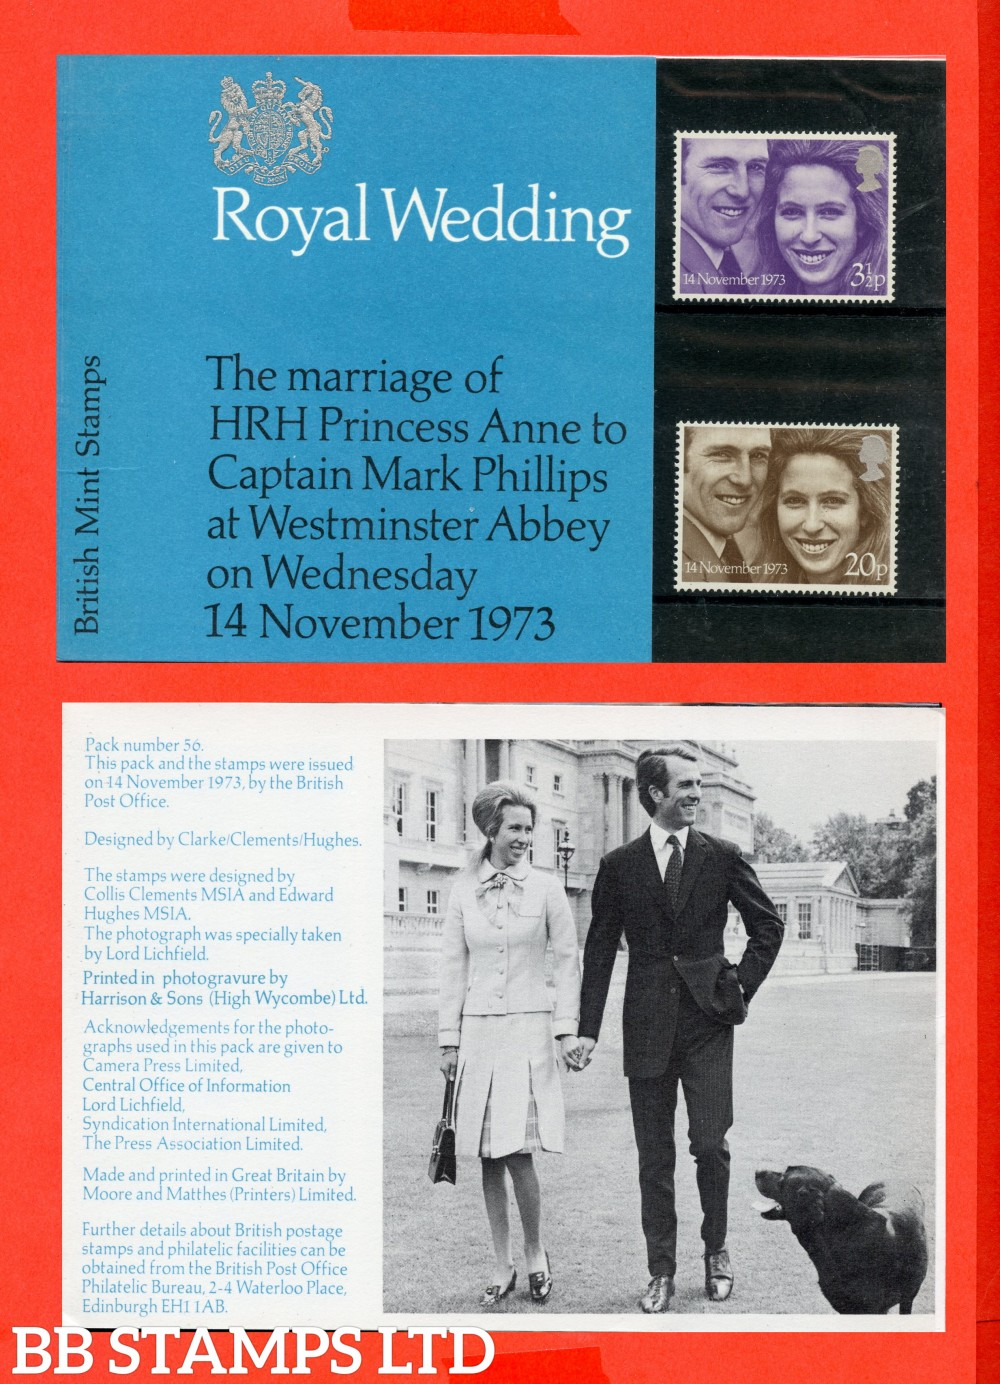 1973 Royal Wedding (Pres Pack is Type D = Flower Between Unicorns Legs. Whole Dog in Piture Picture)